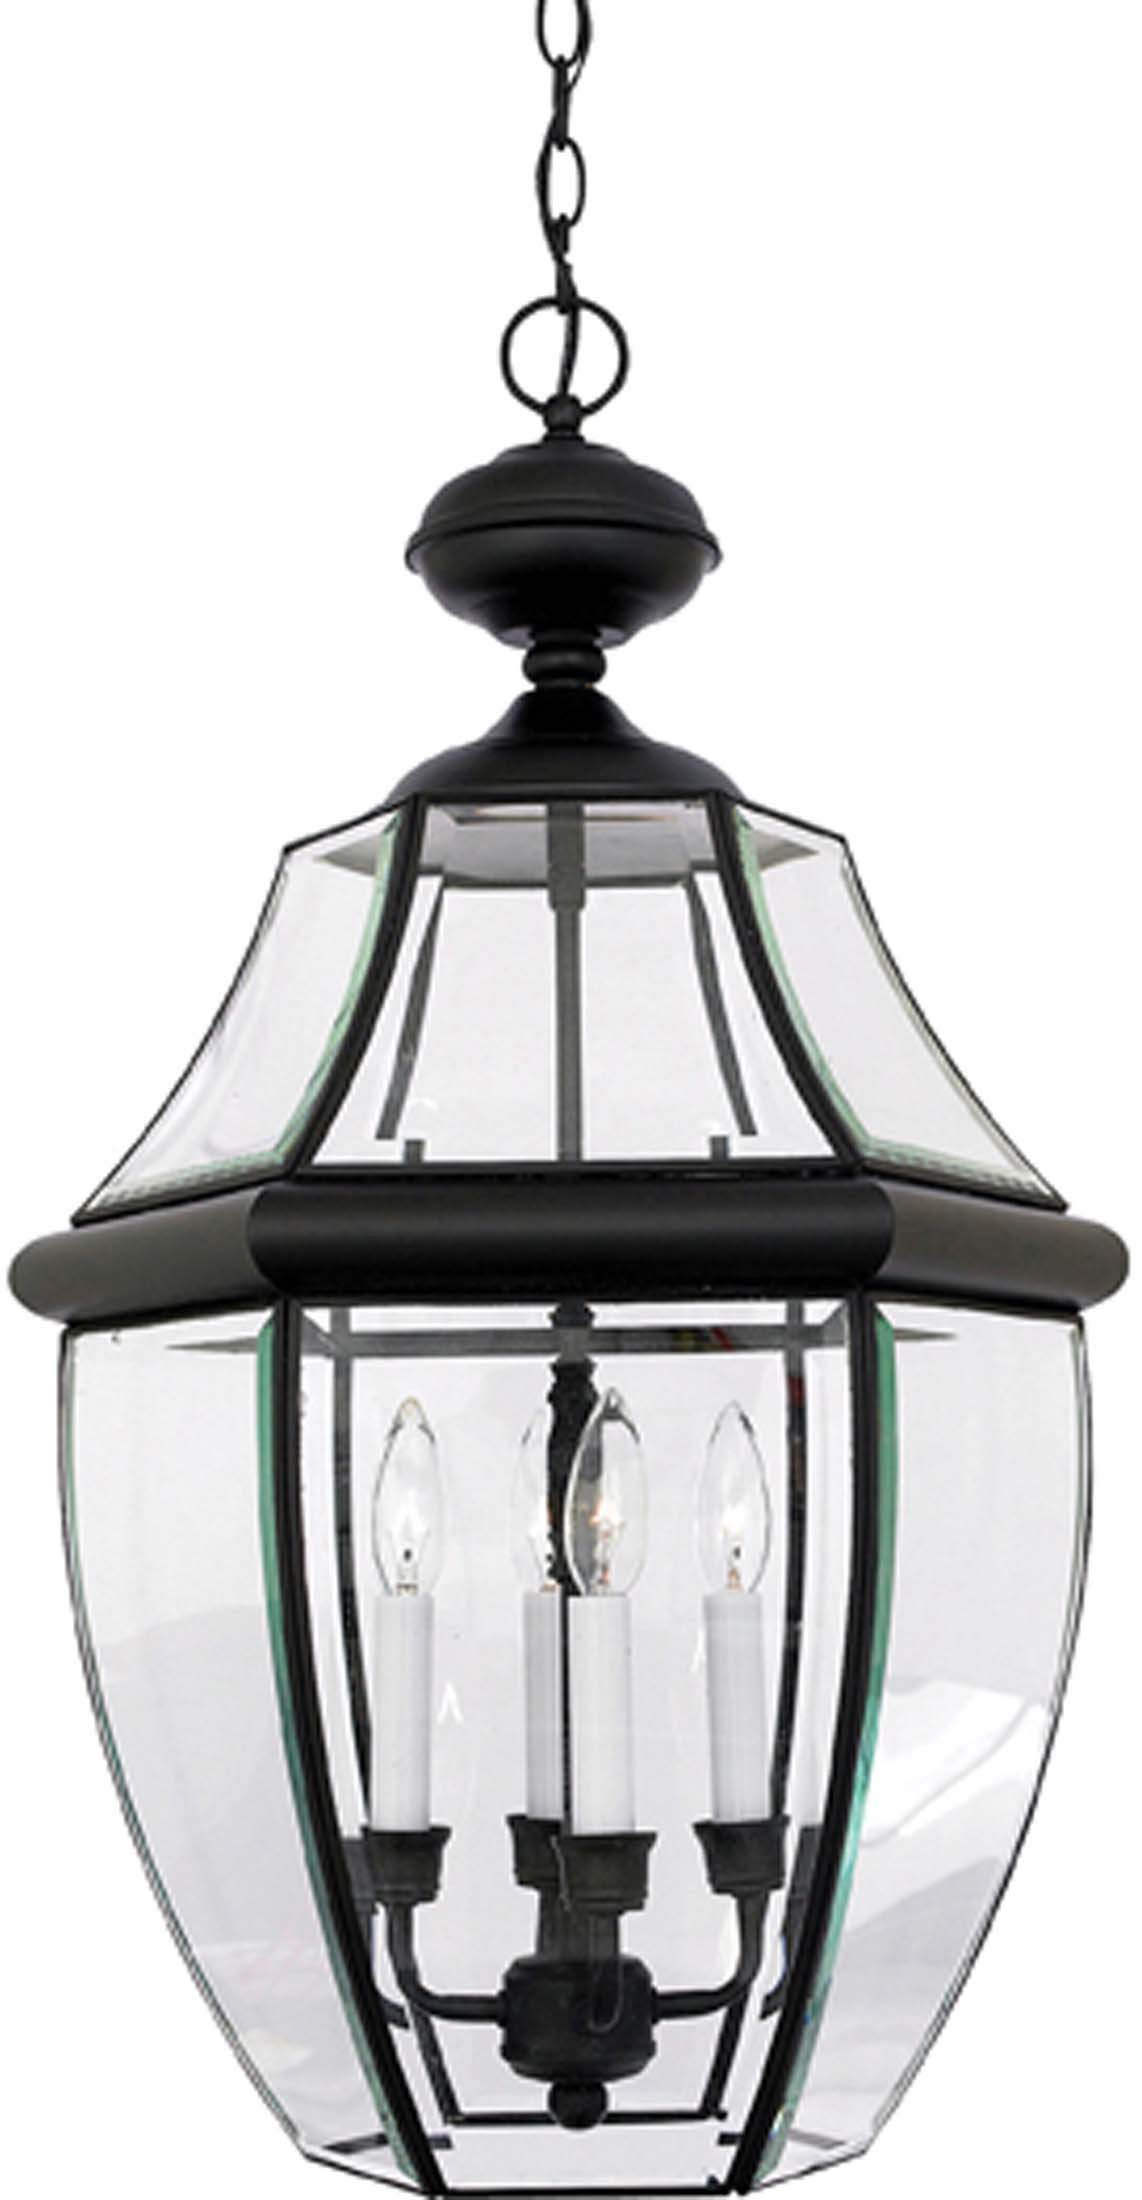 Quoizel NY1180K 4-Light Newbury Outdoor Lantern in Mystic Black